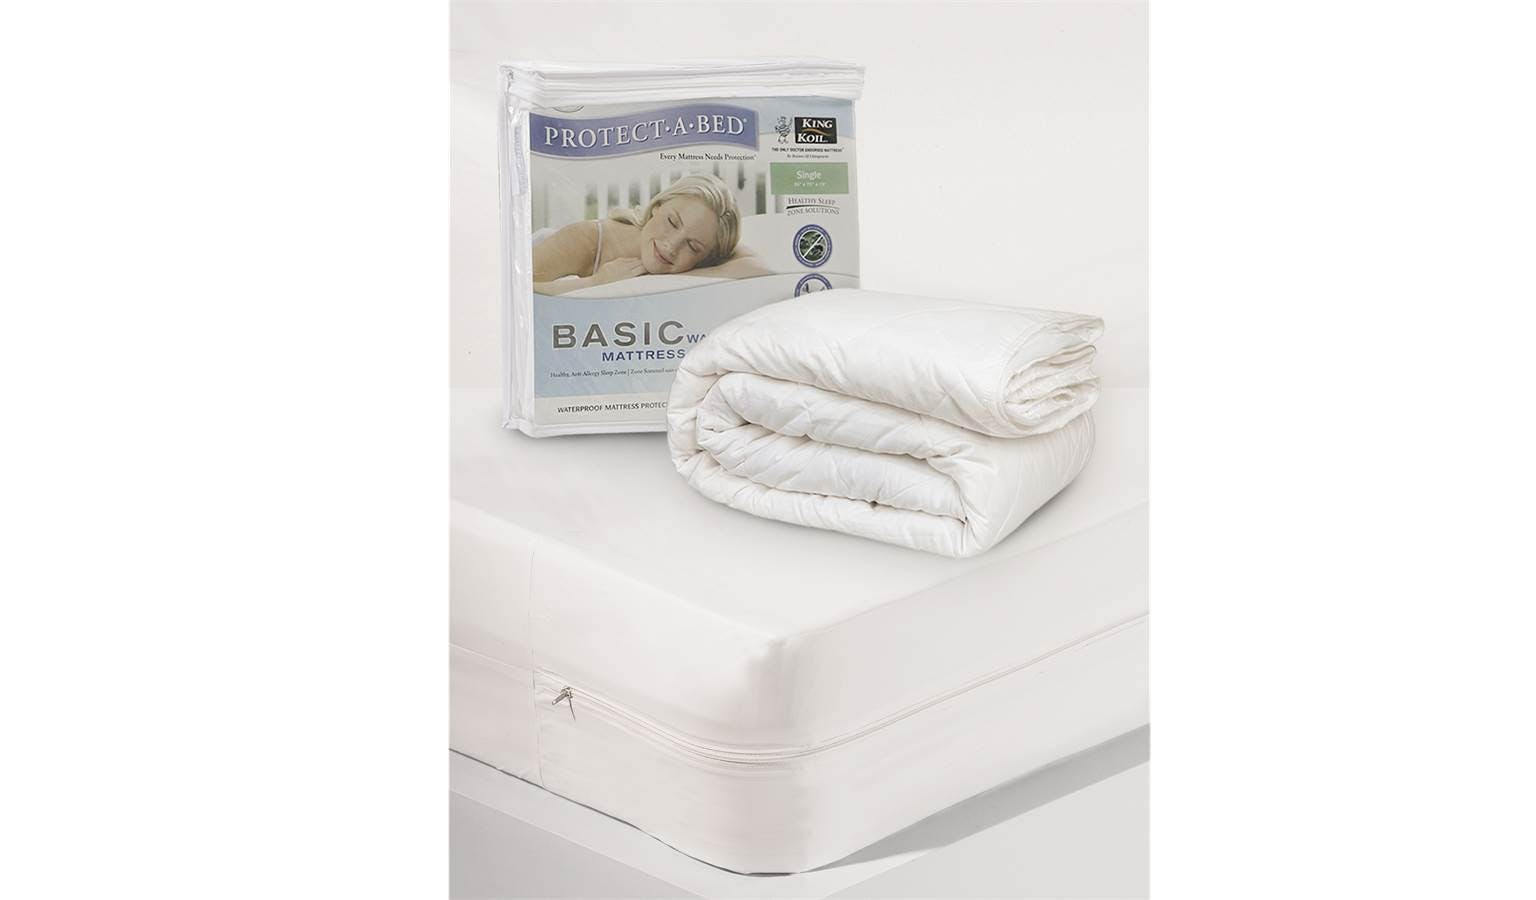 King Koil Protect-a-bed Basic Mattress Protector - Queen ...